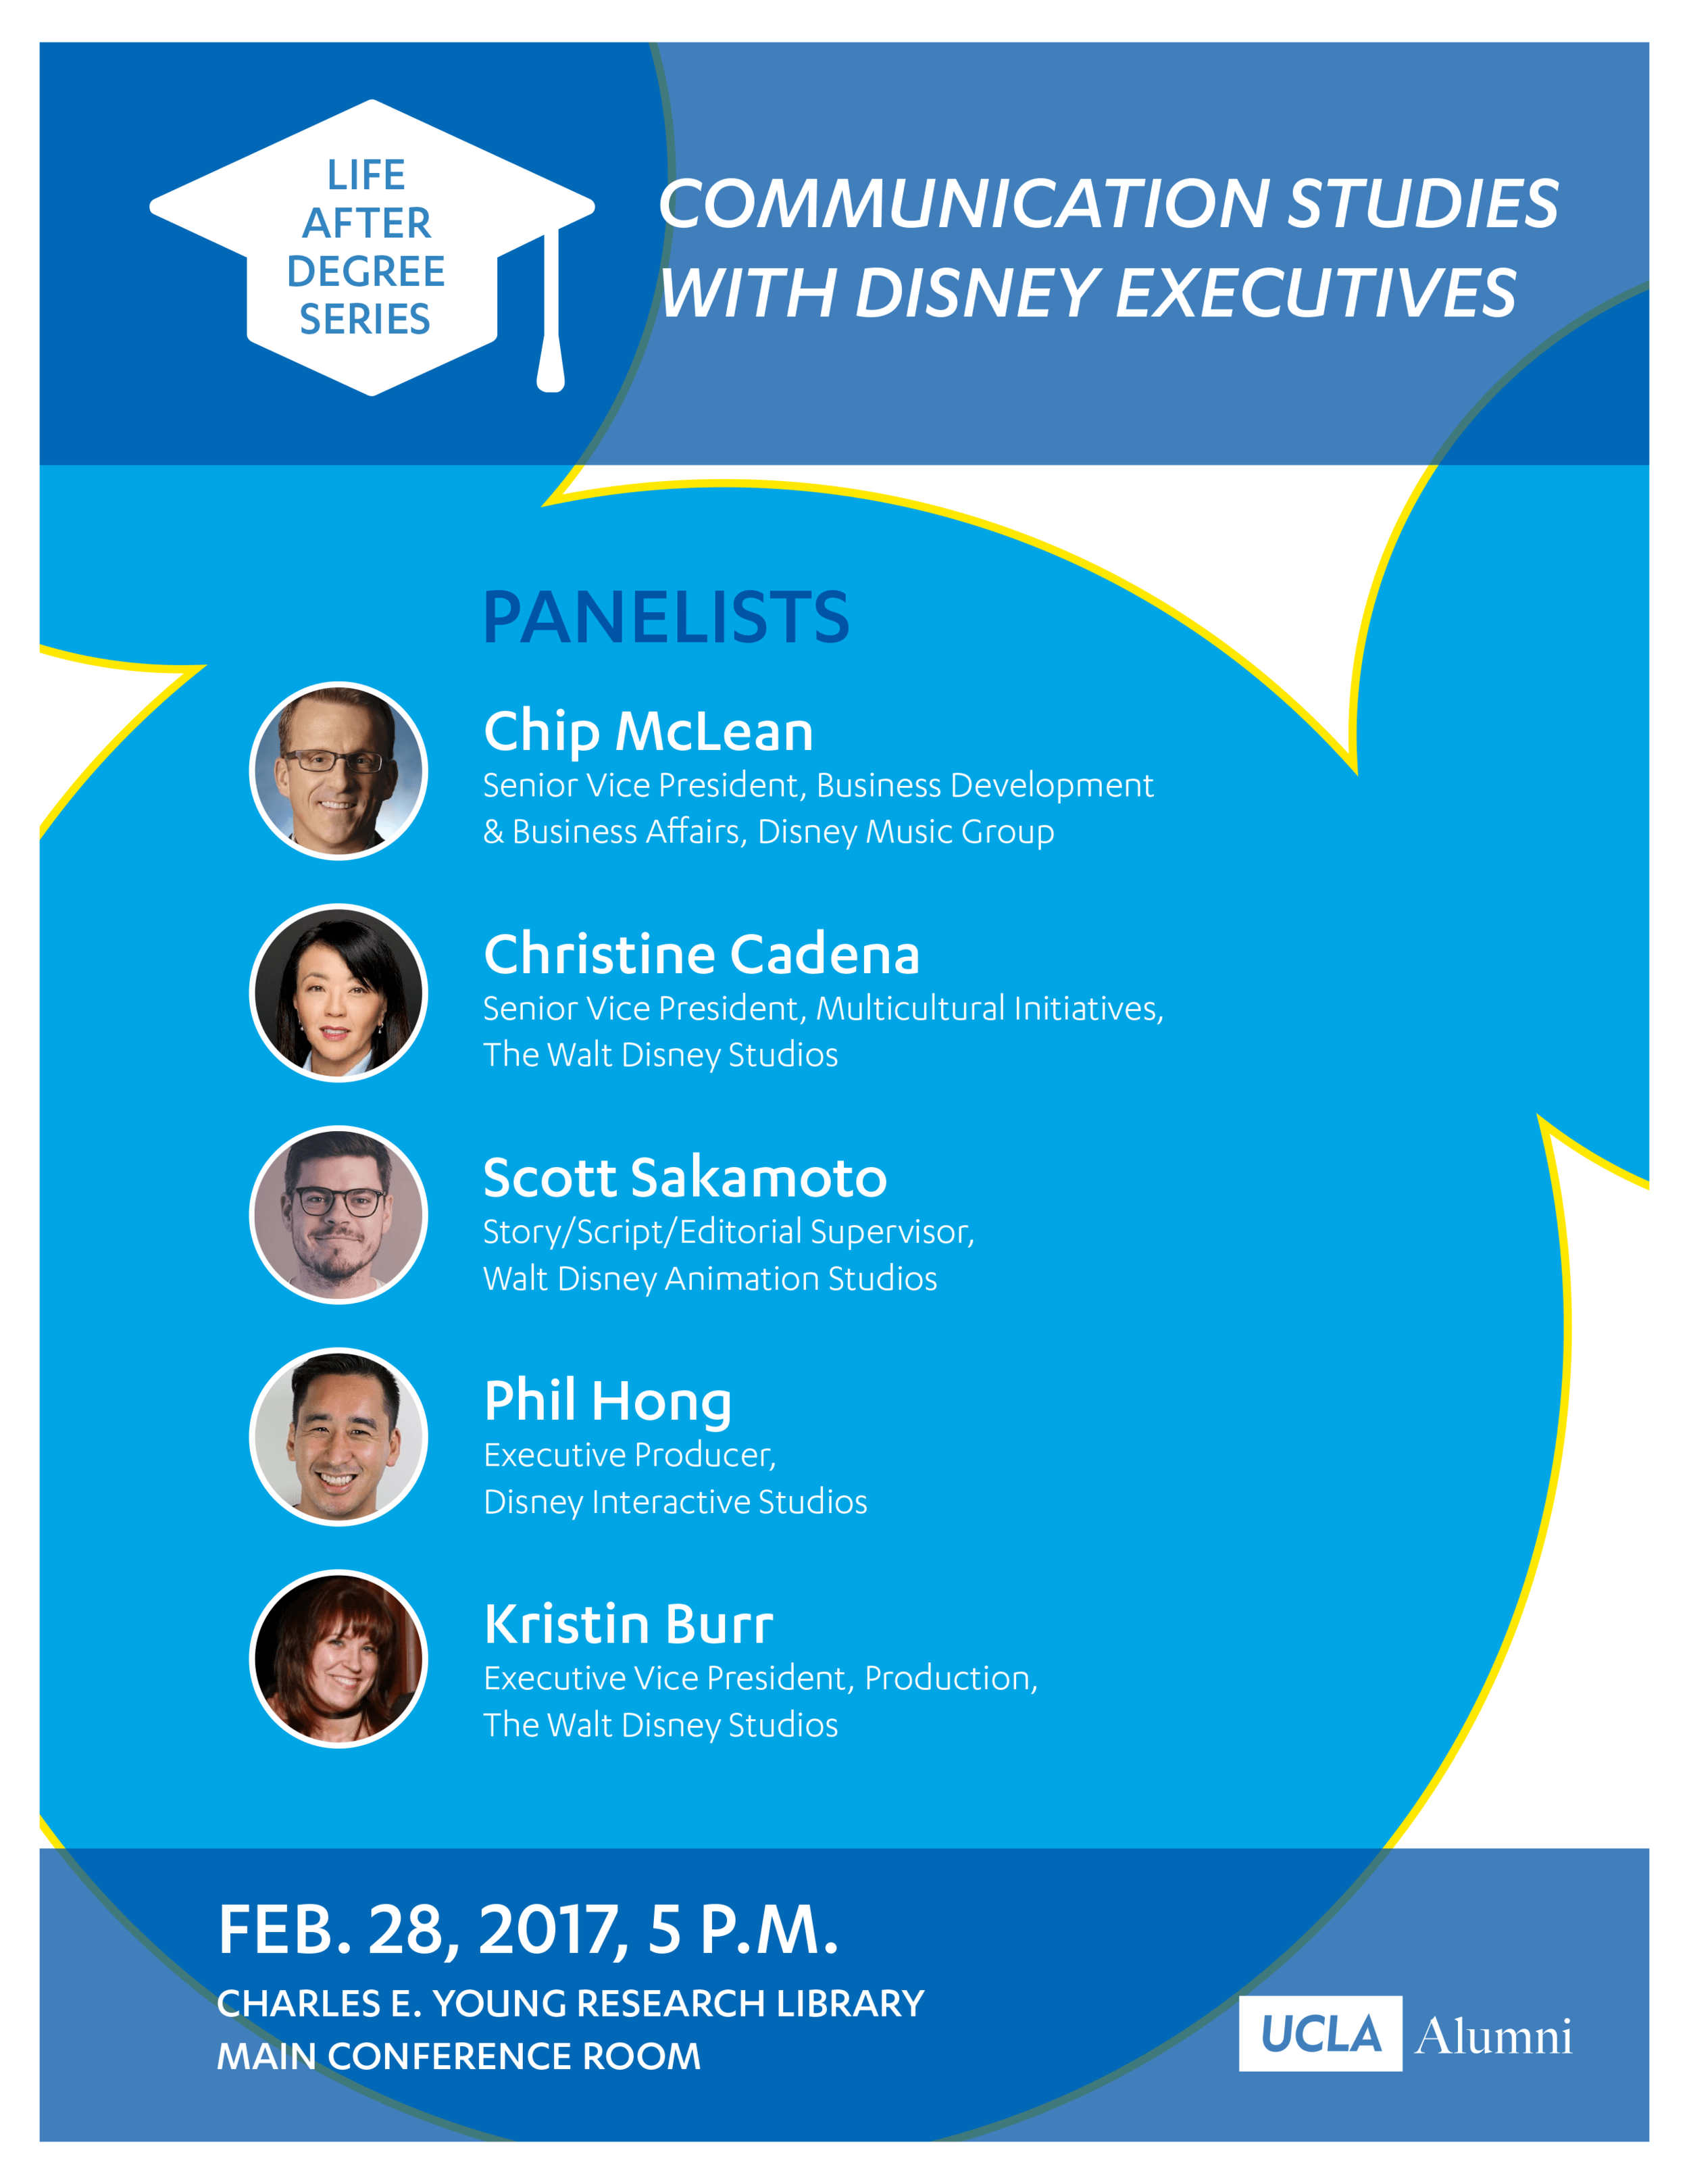 One of many co-branded deliverables. This poster was for a networking event at Disney for bruins.